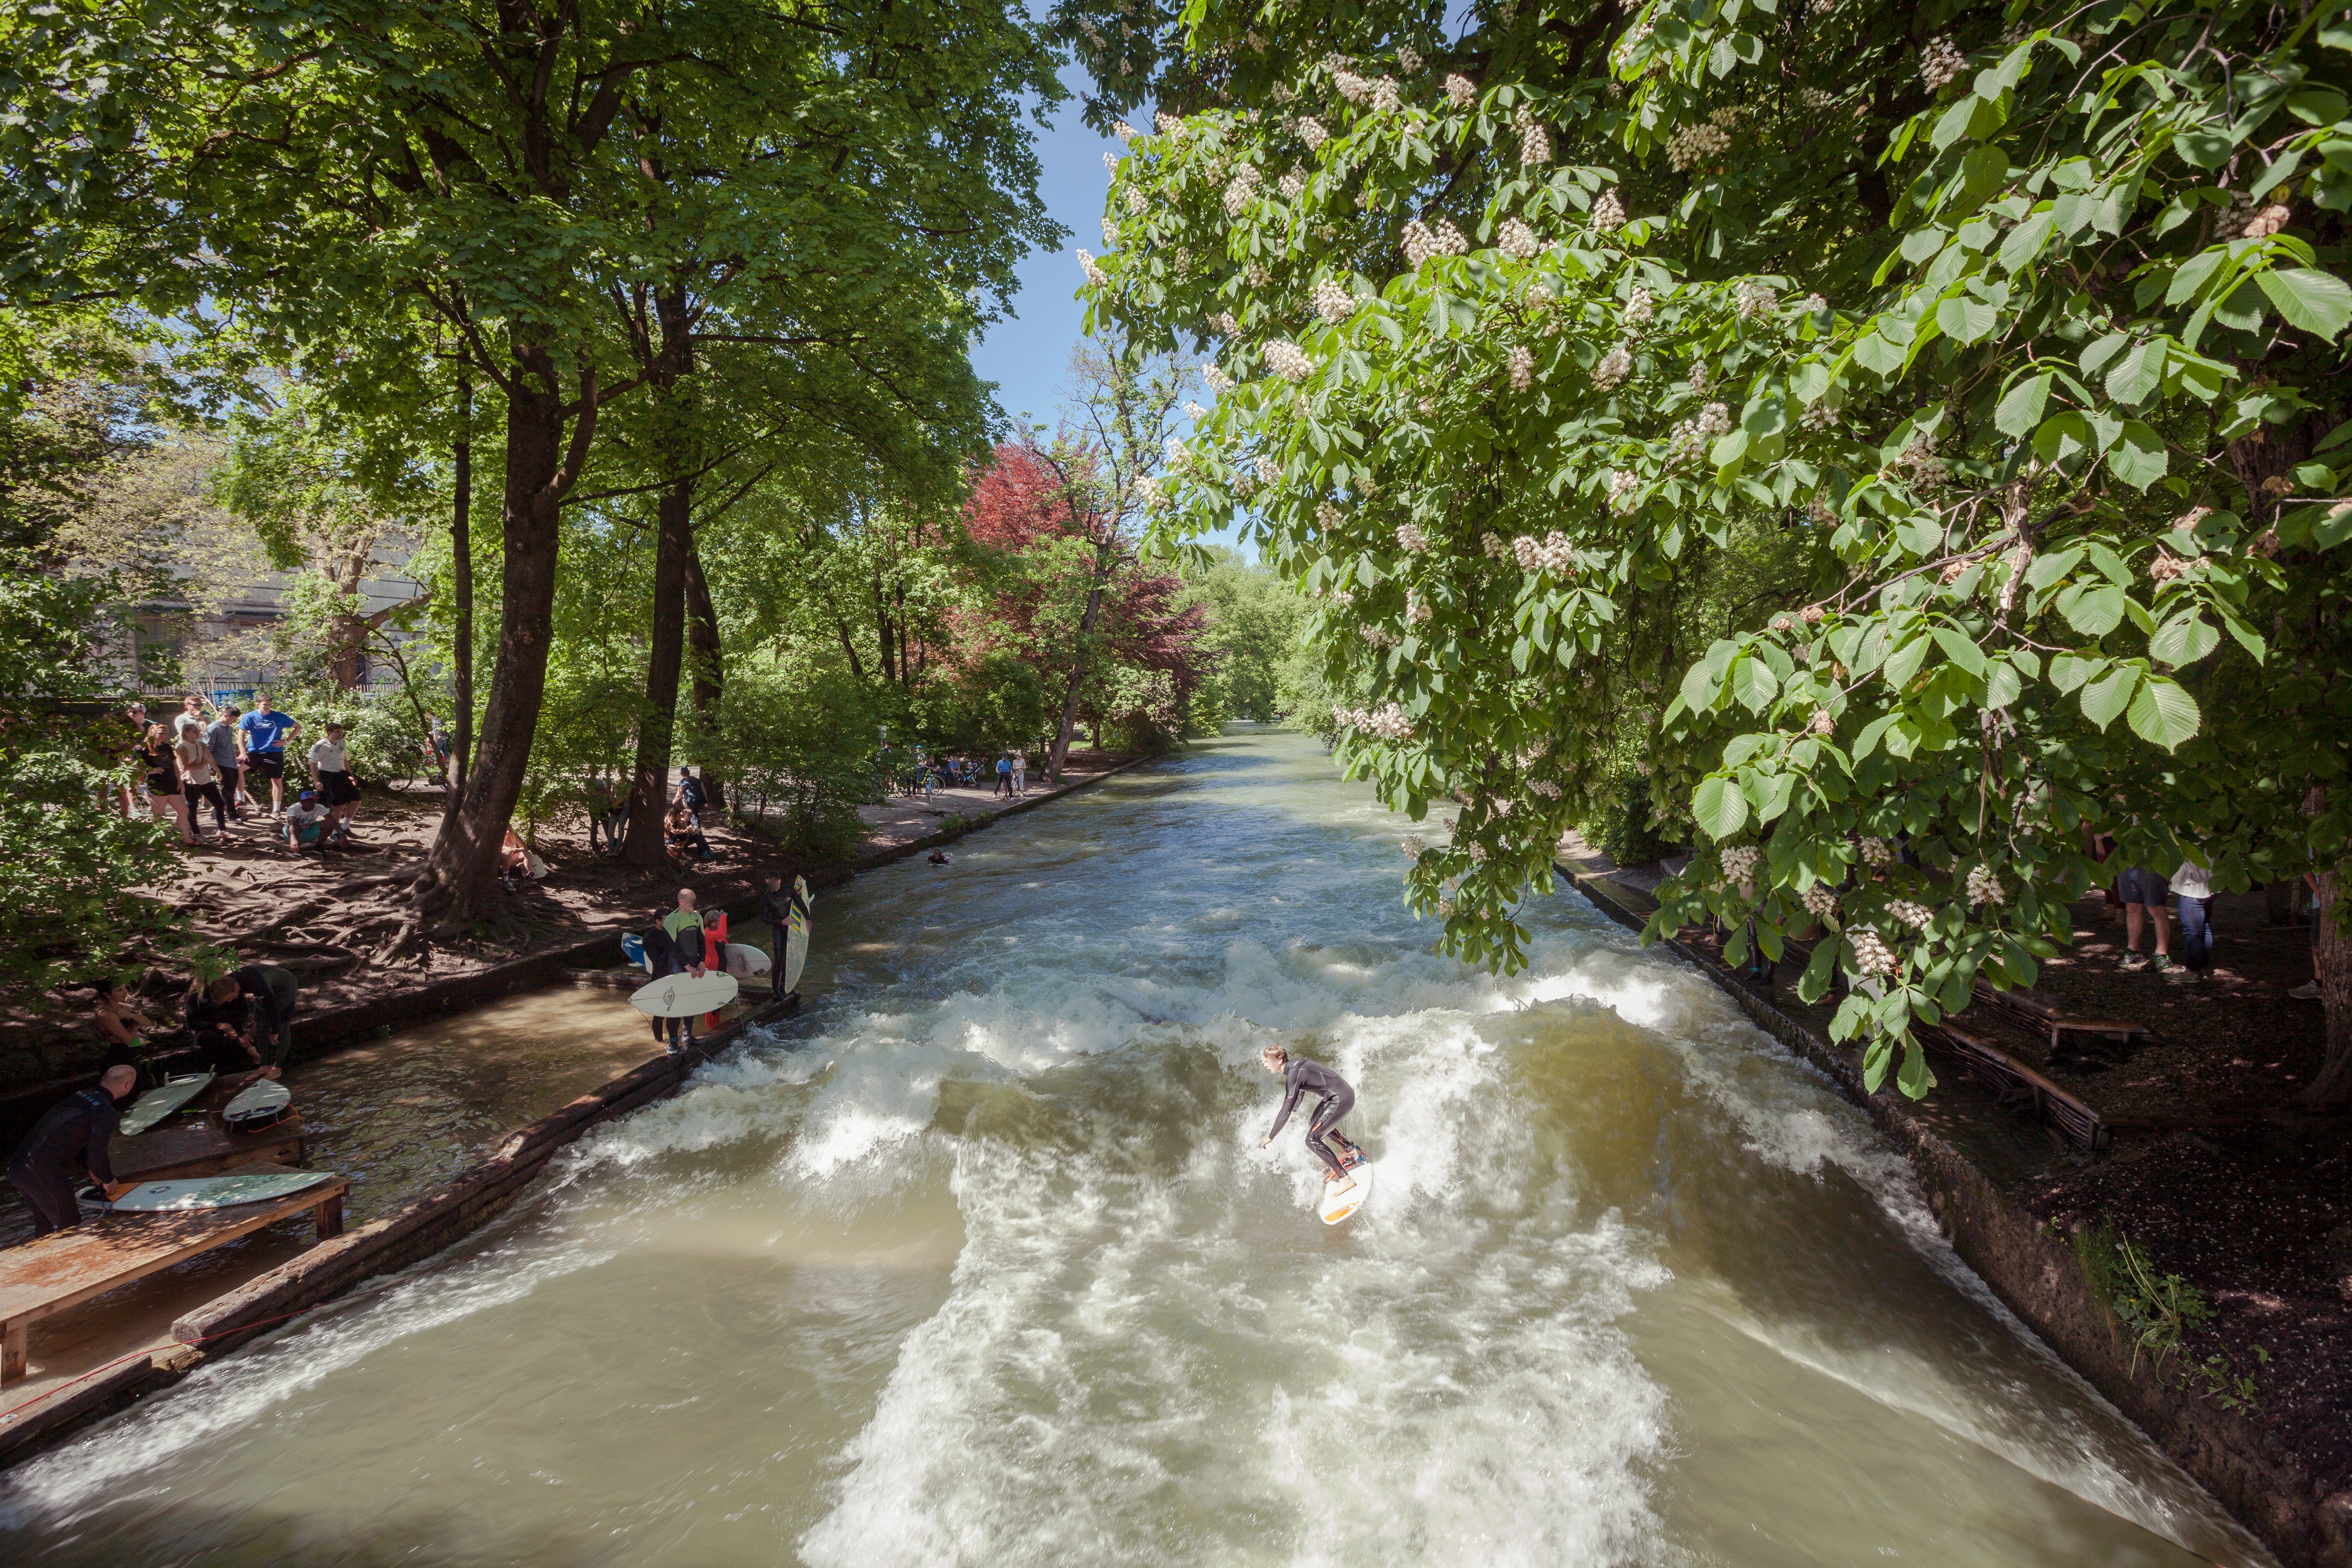 This is an image of surfers in the Englischer Garten in Munich, Germany.